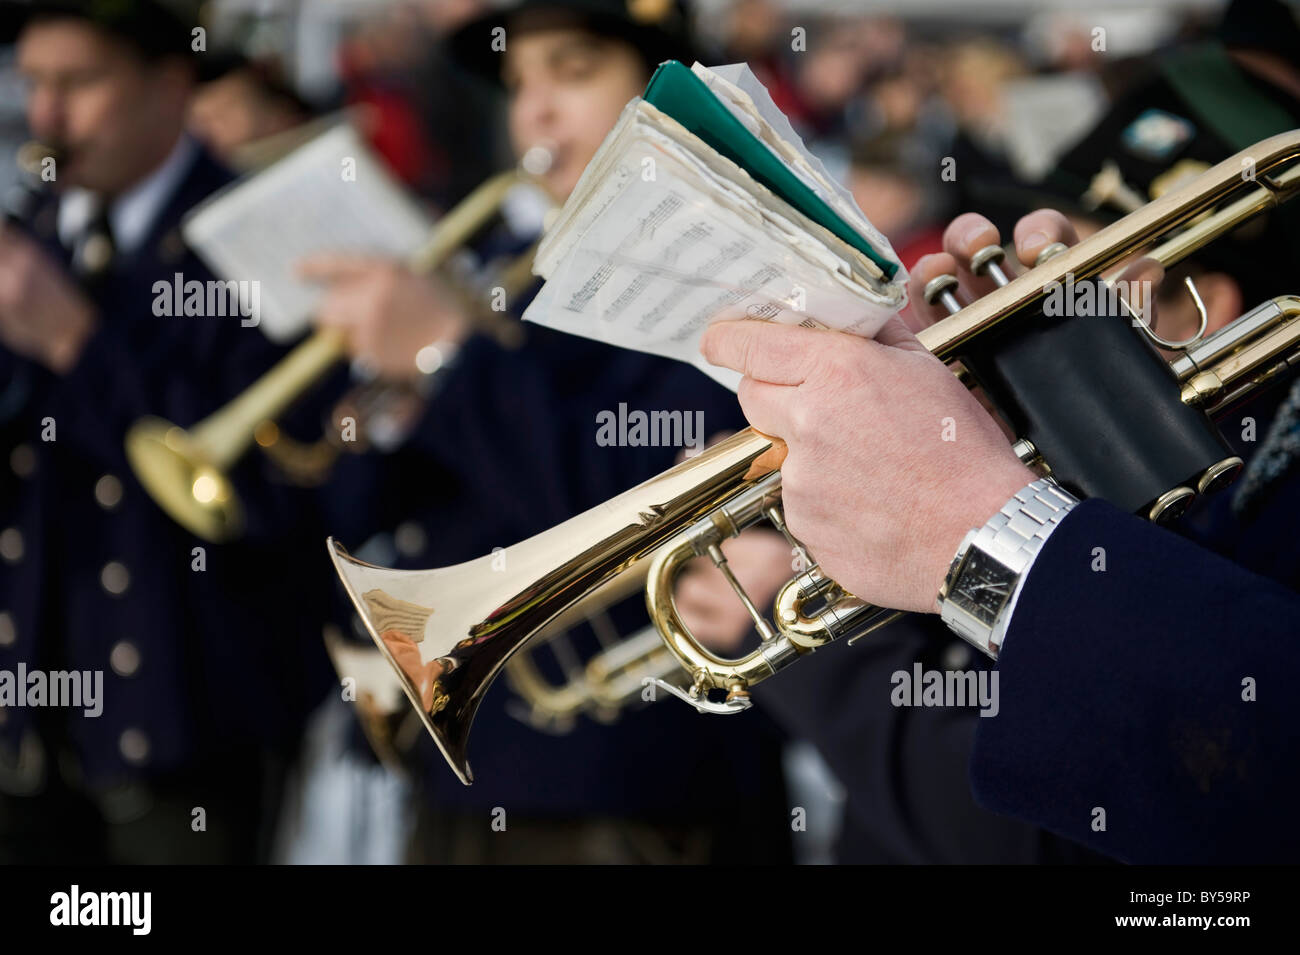 Person playing a trumpet in a marching band - Stock Image